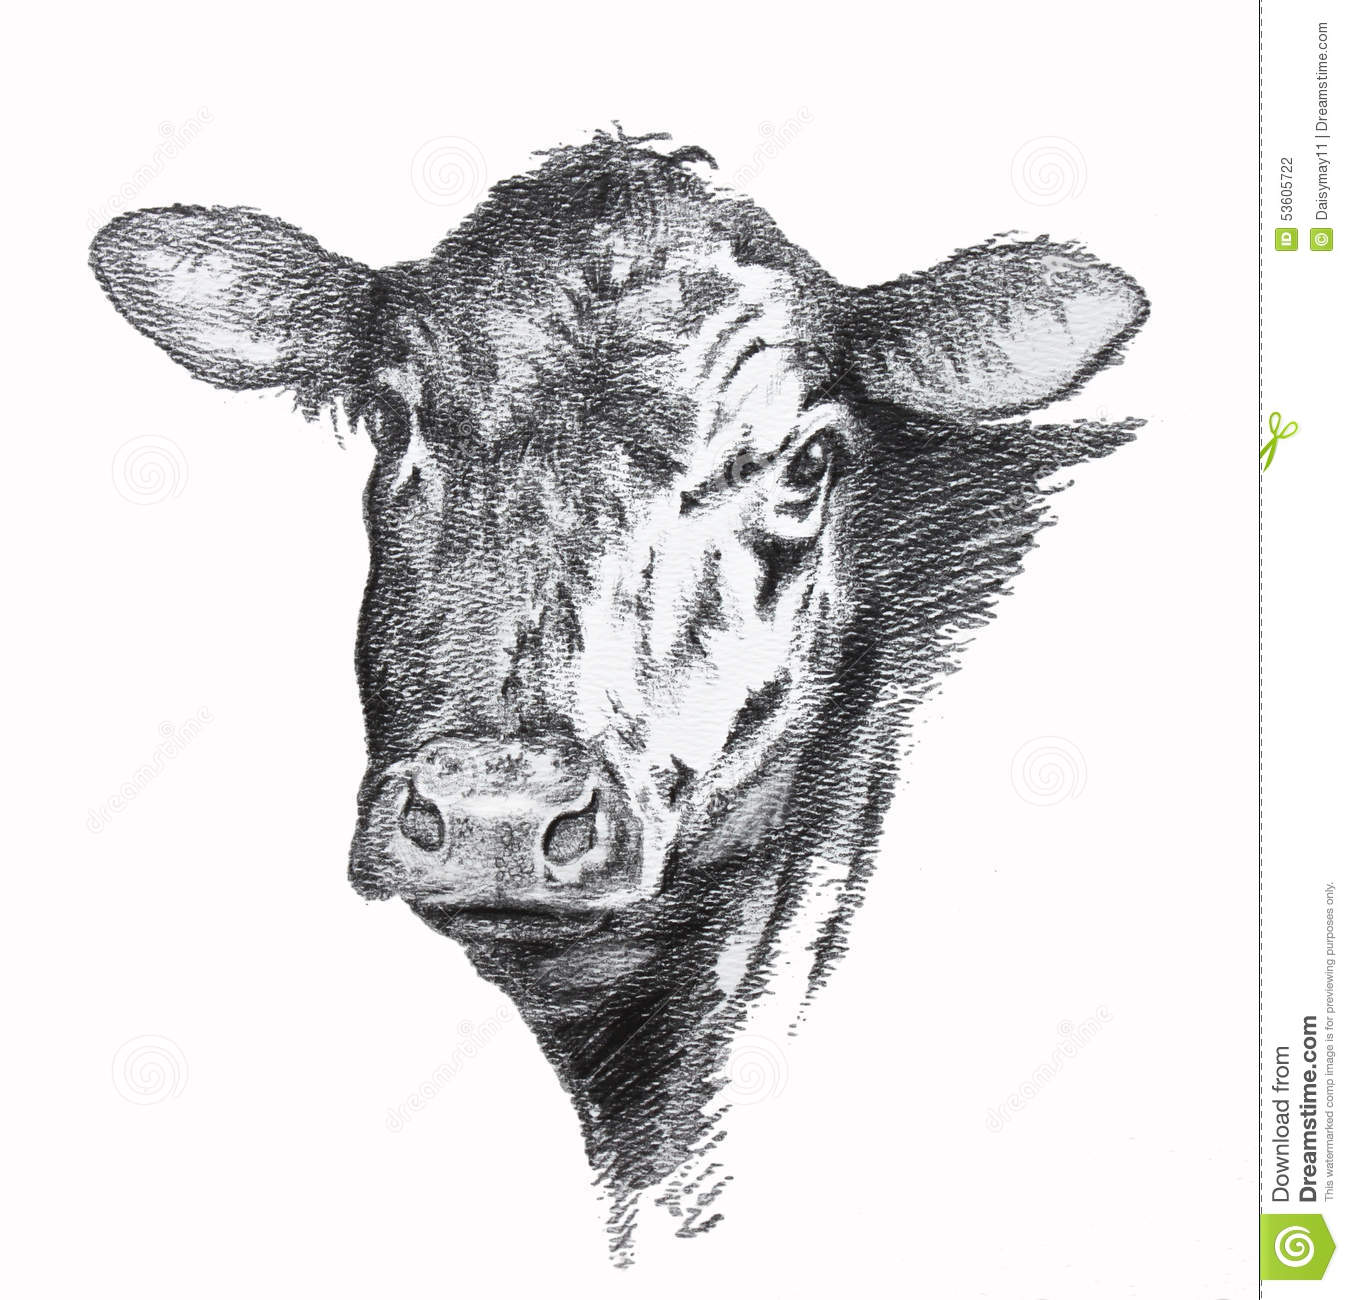 cow pencil drawing stock illustration image 53605722